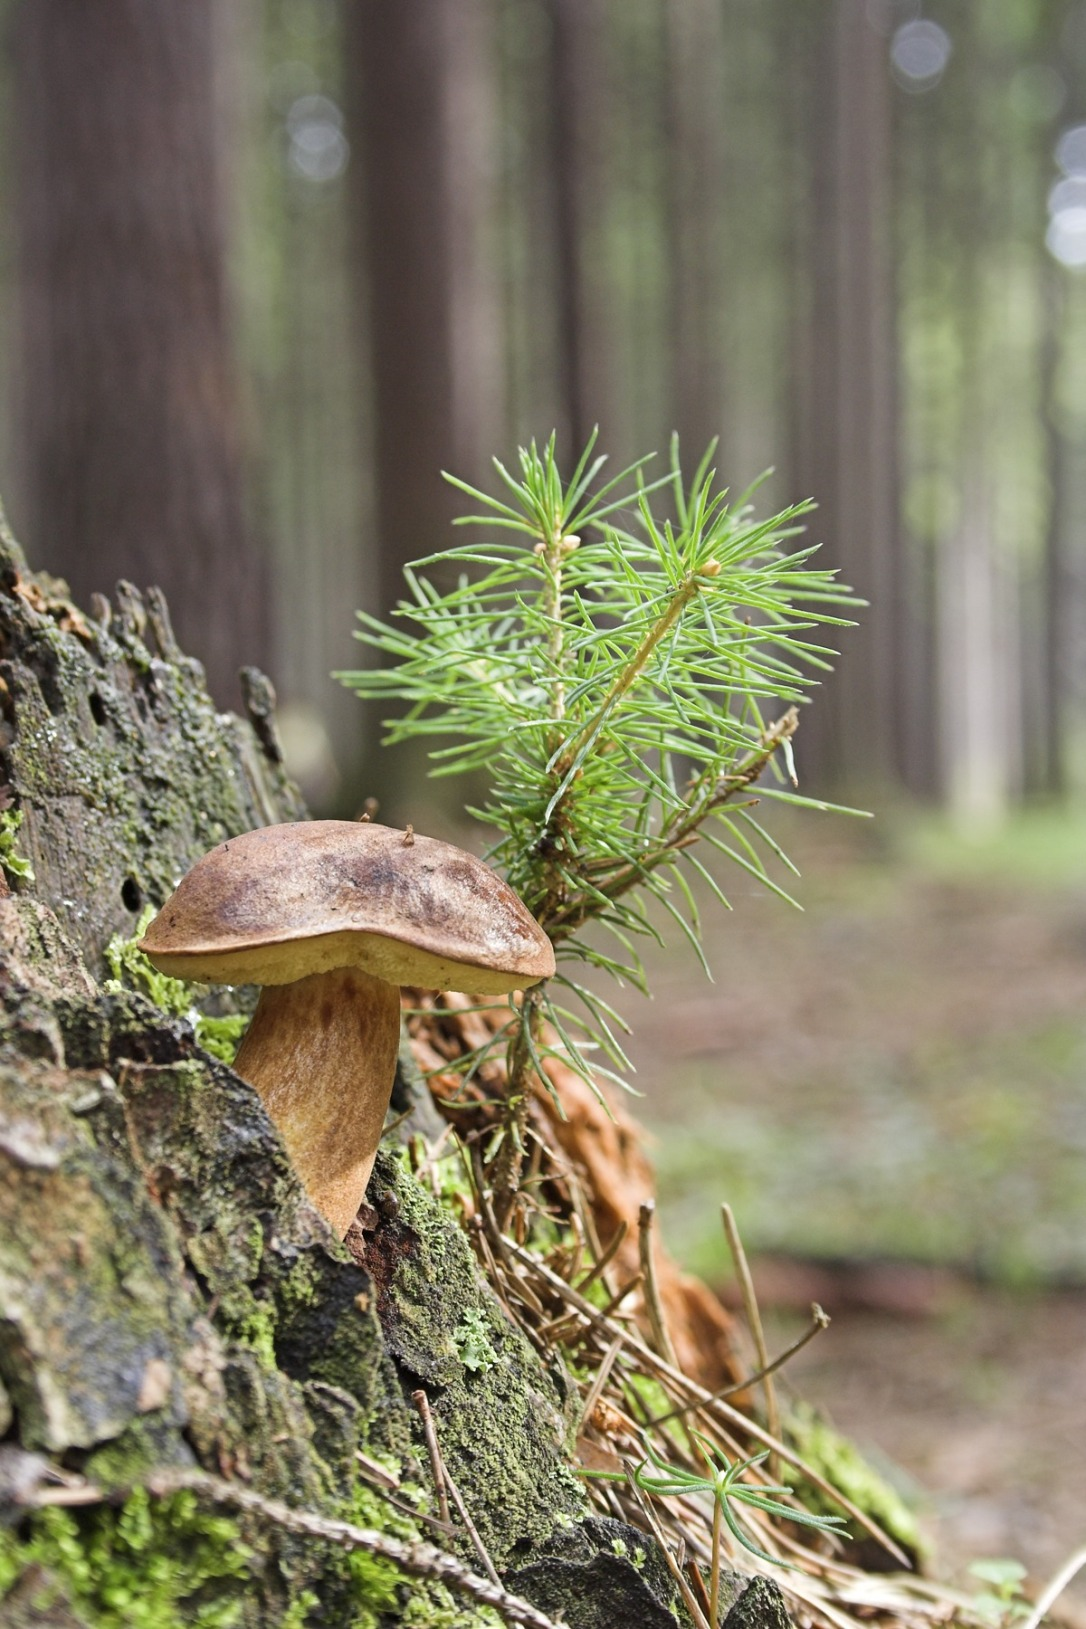 wild_mushroom_close_green_wood_forest_tiny_tree-1260967.jpg